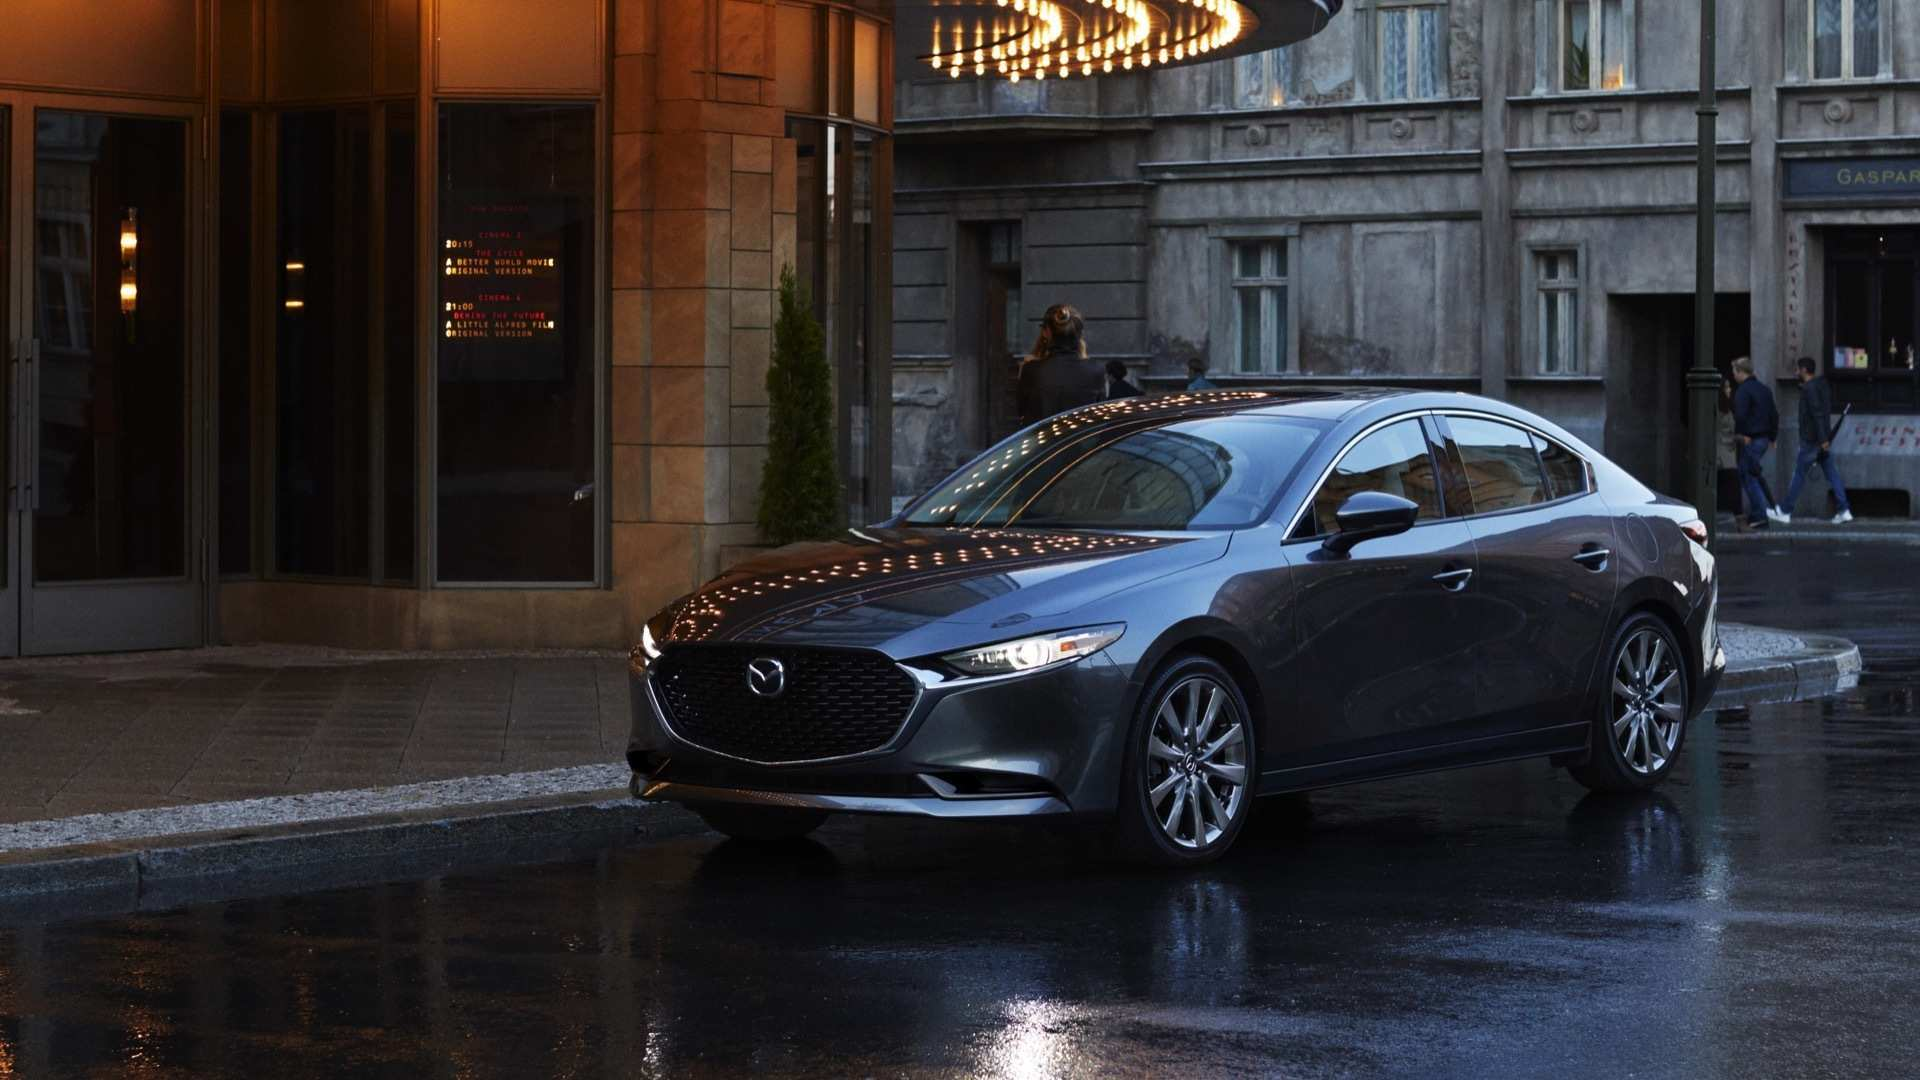 45 New 2019 Mazda Lineup Photos